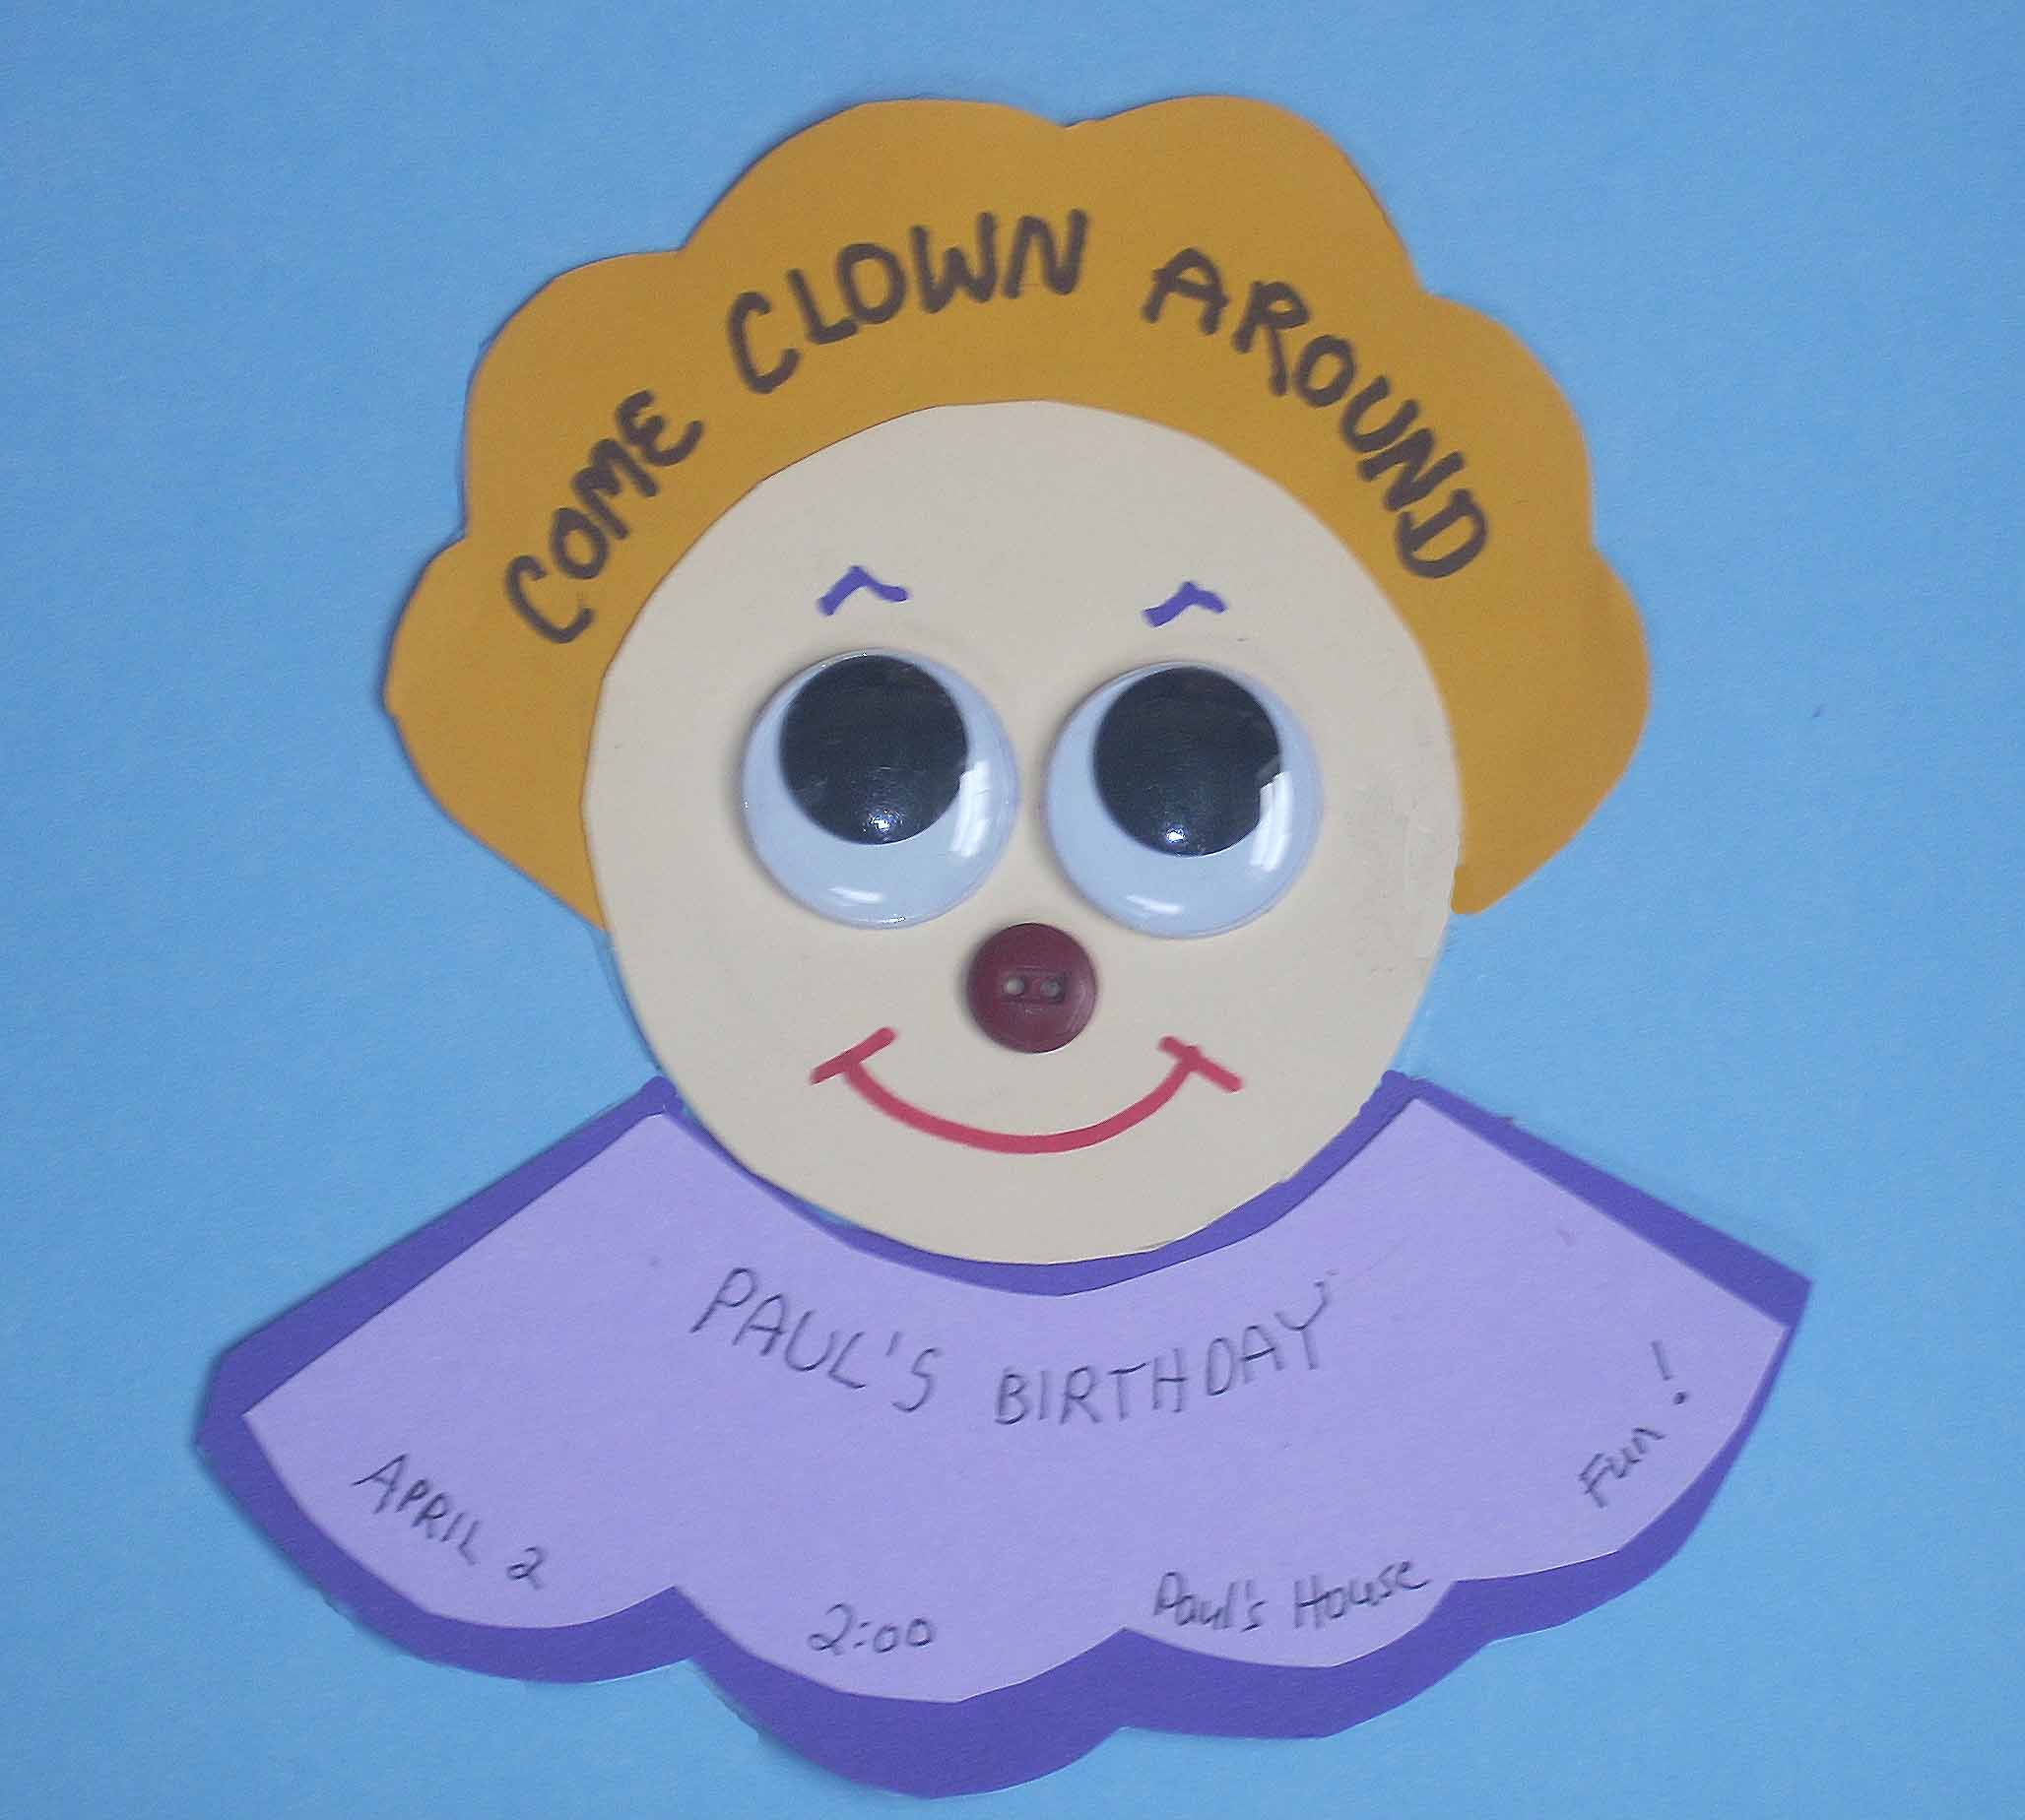 How to Make Decorations and Invitations for a Kid's Birthday Party : Overview : Clown Birthday Invitation